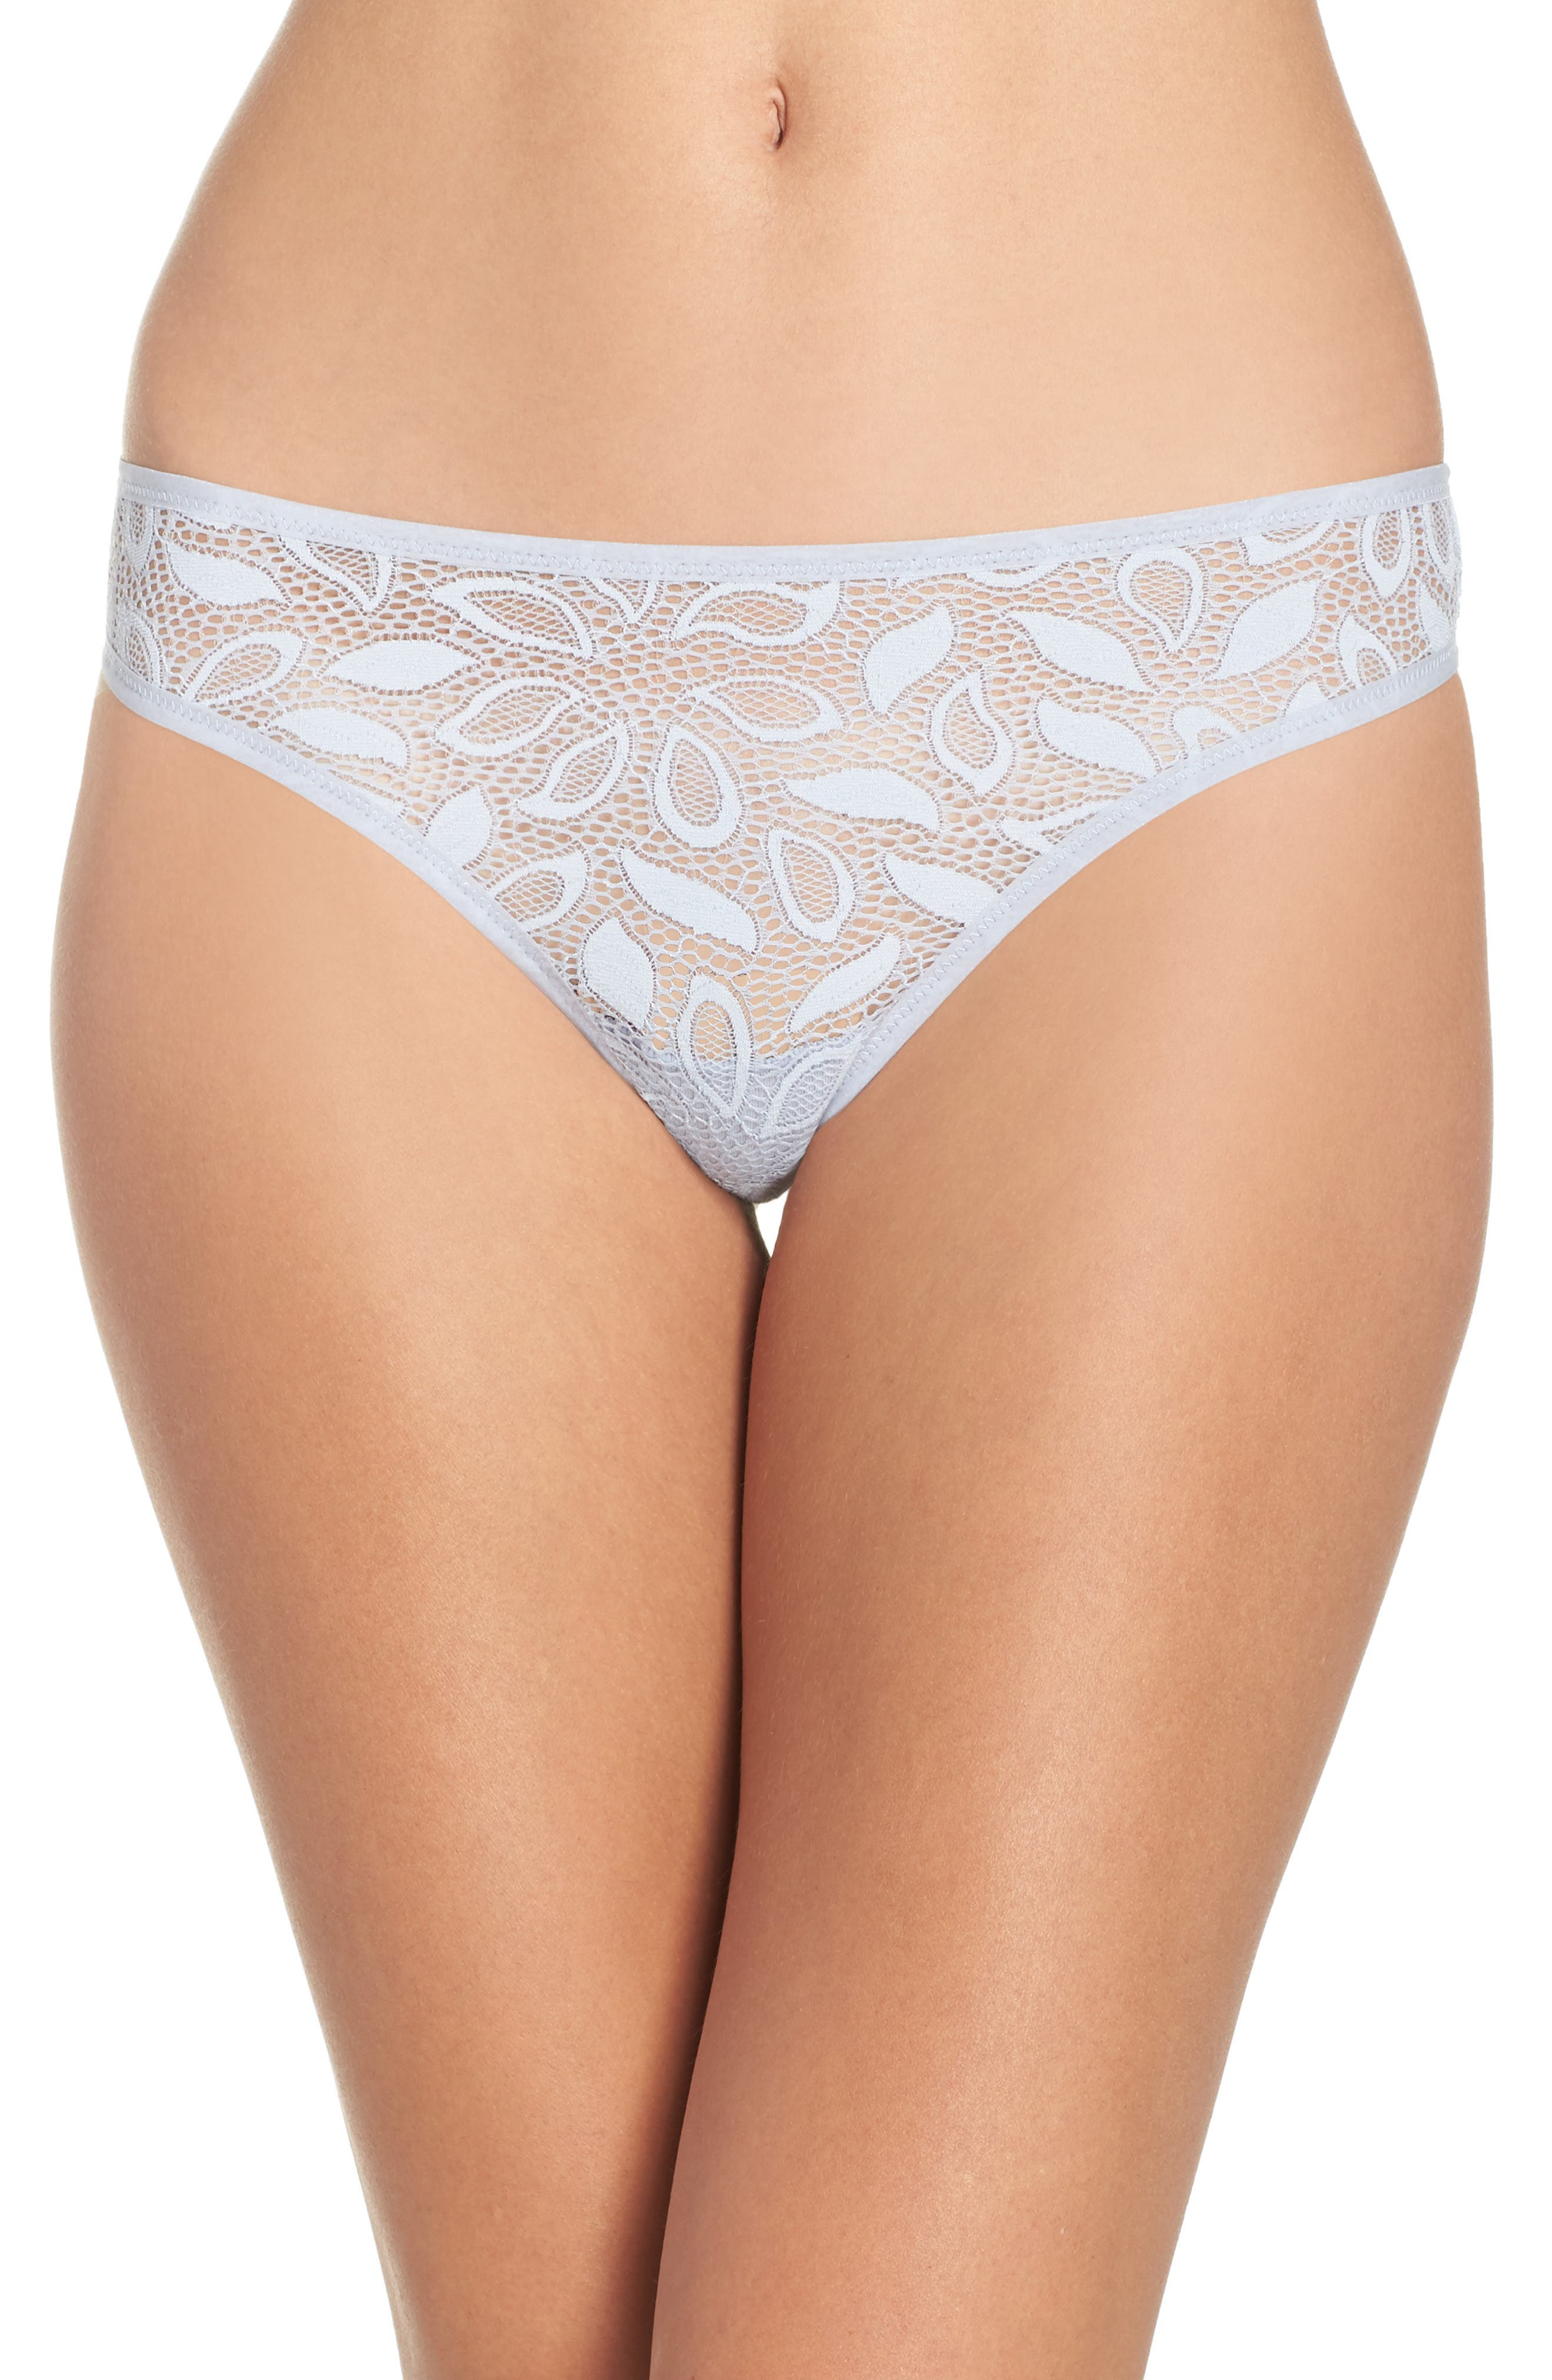 Epure by Lise Charmel Mosaique Florale Thong